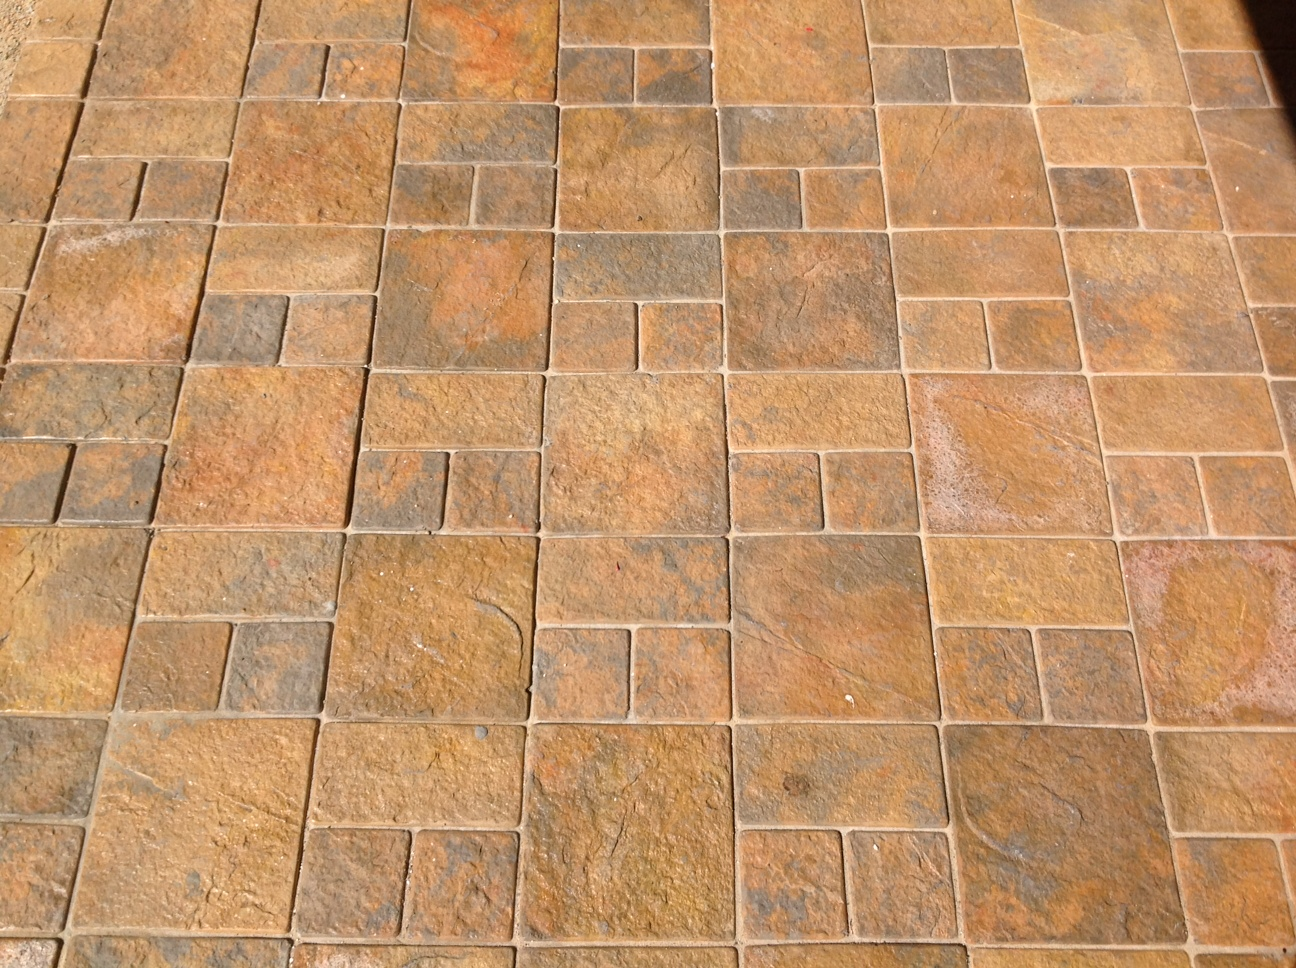 3 size cobble paving